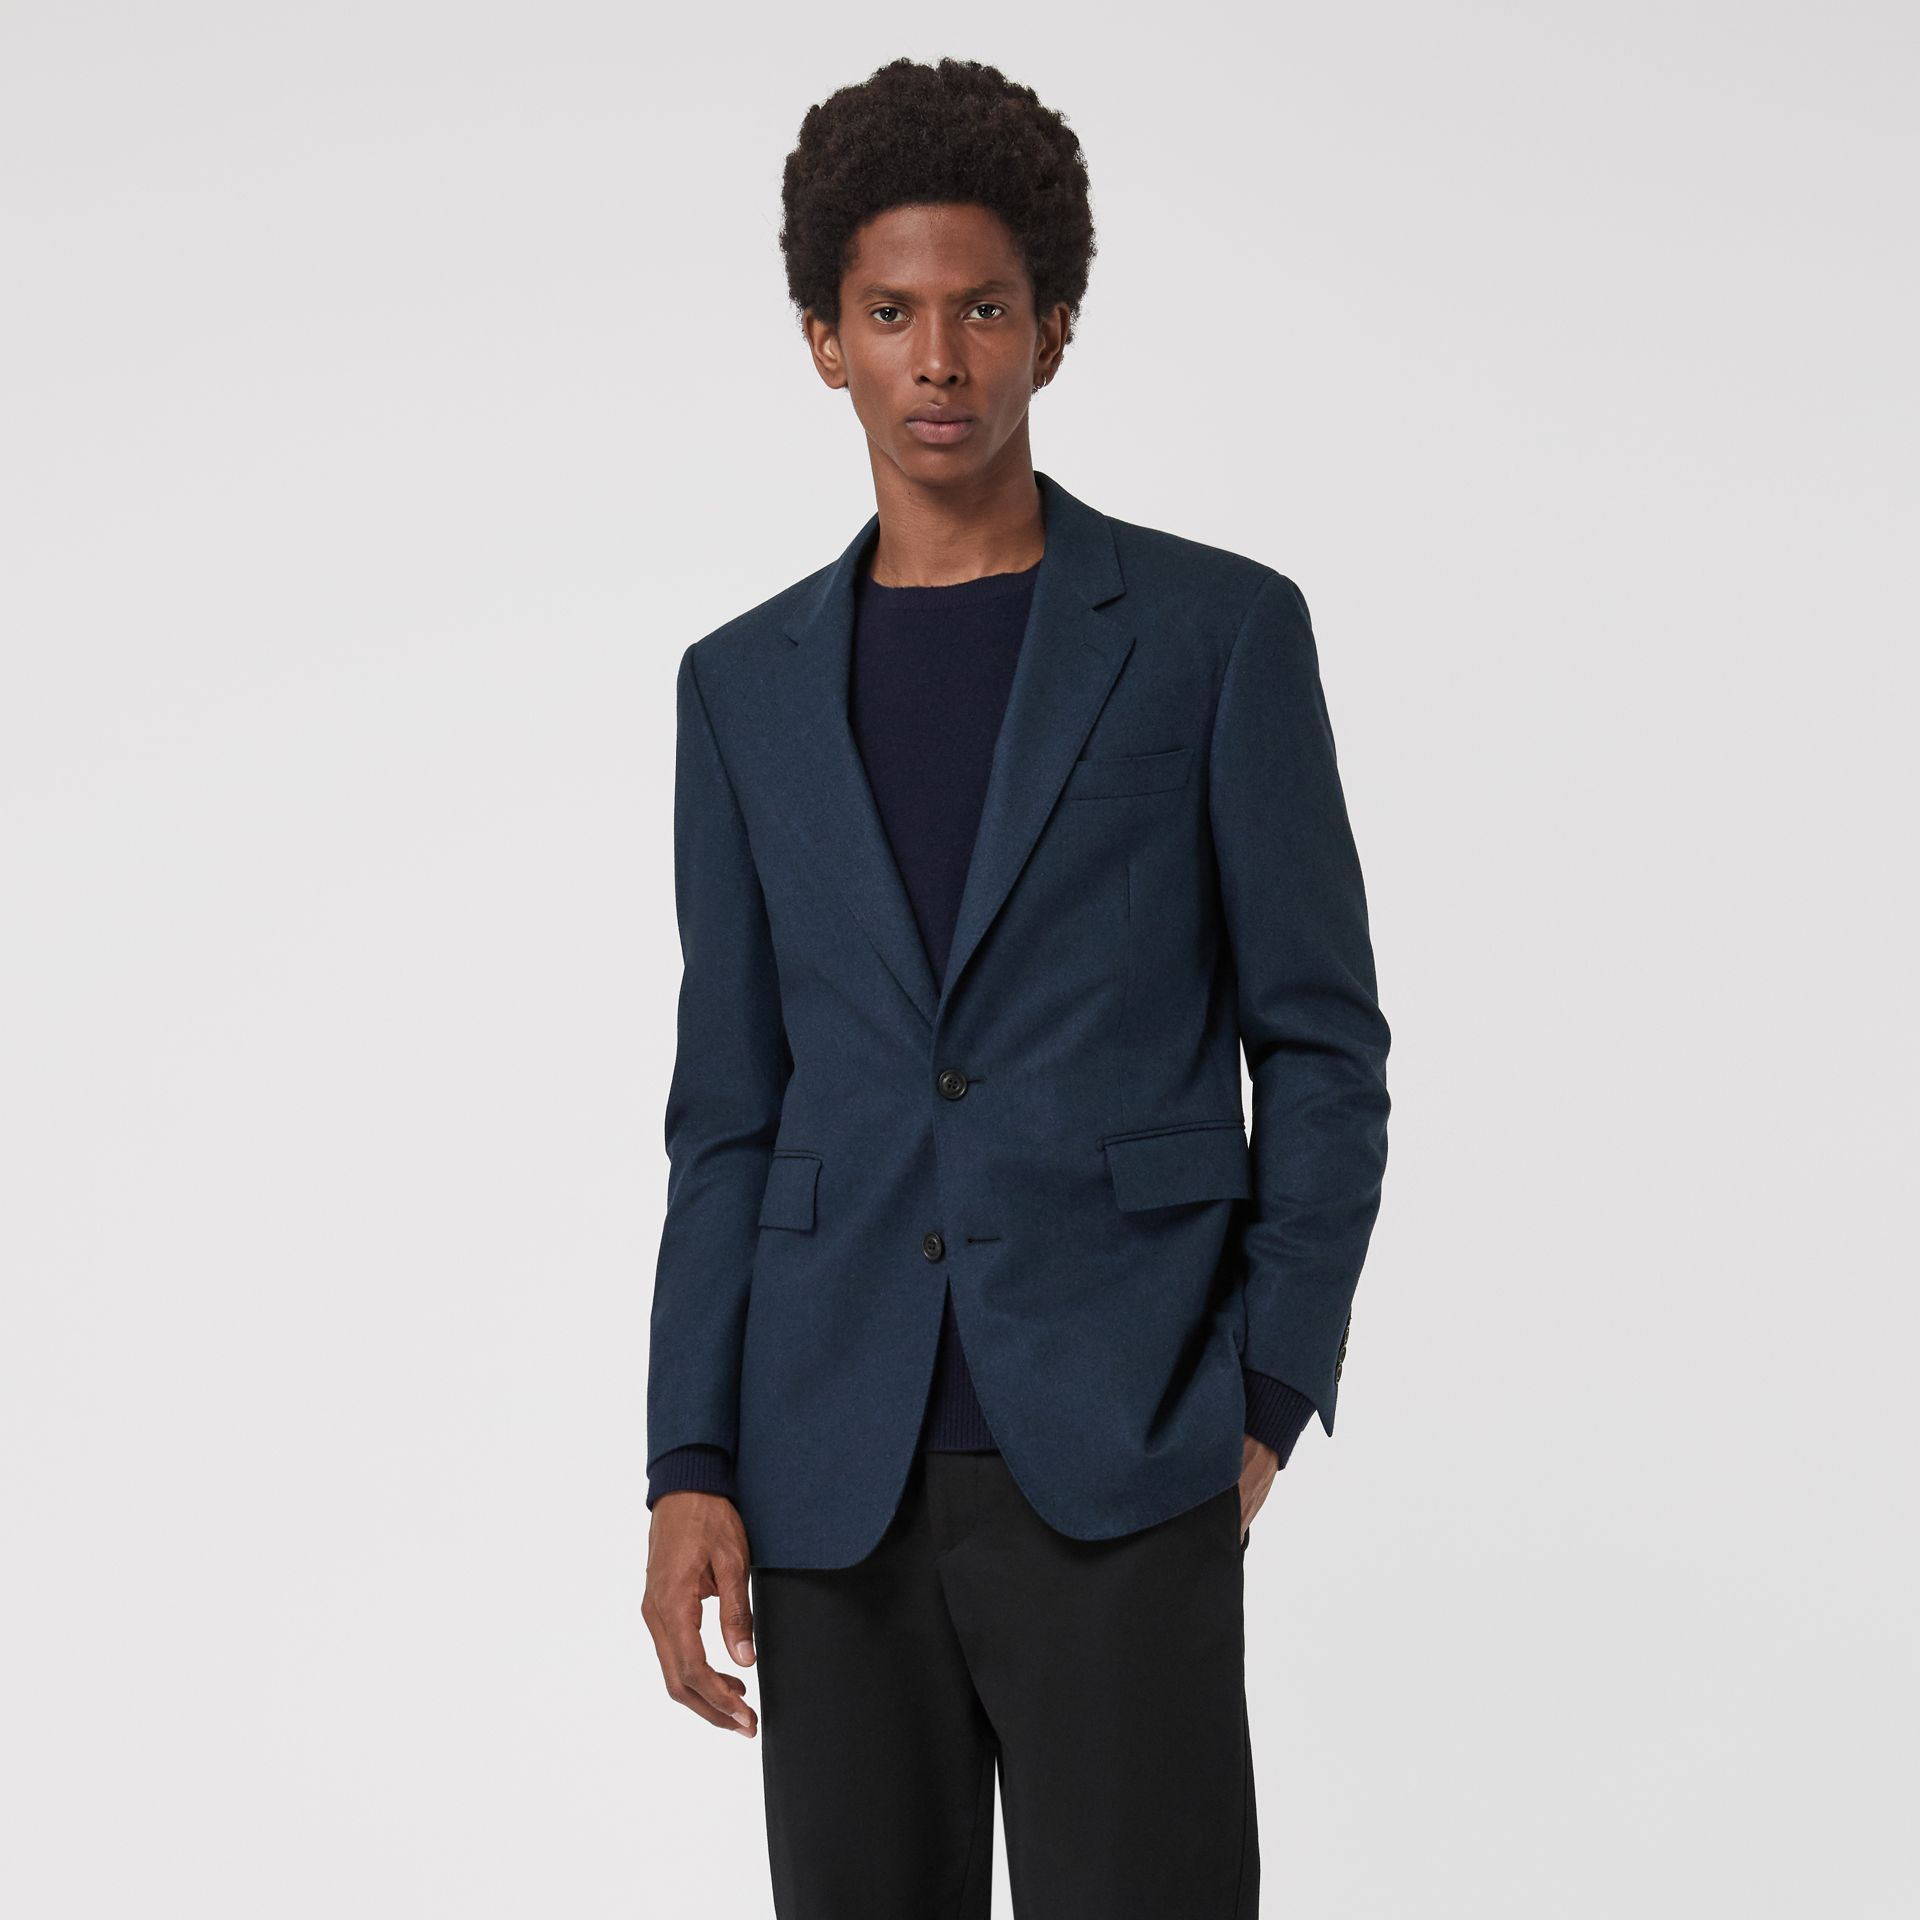 Classic Fit Wool Cashmere Tailored Jacket in Dark Teal - Men | Burberry Australia - gallery image 5